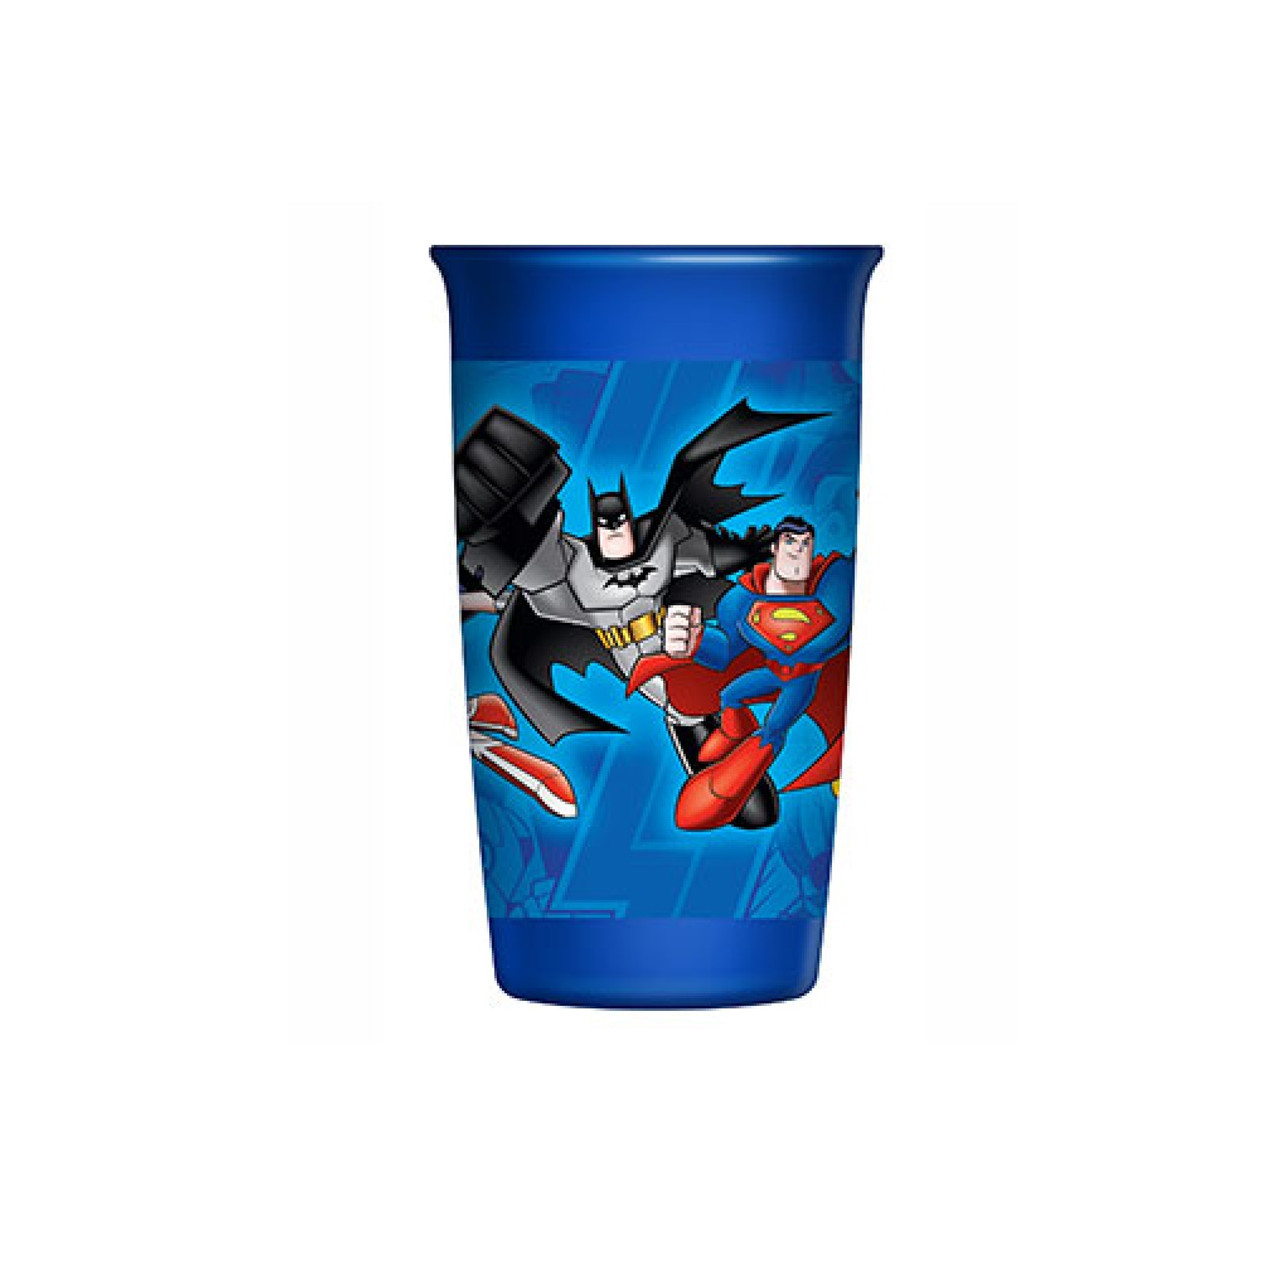 Playtex 360 degree Spoutless Cup, DC Super Friends, Blue, Stage 2, 12M+, 10 oz